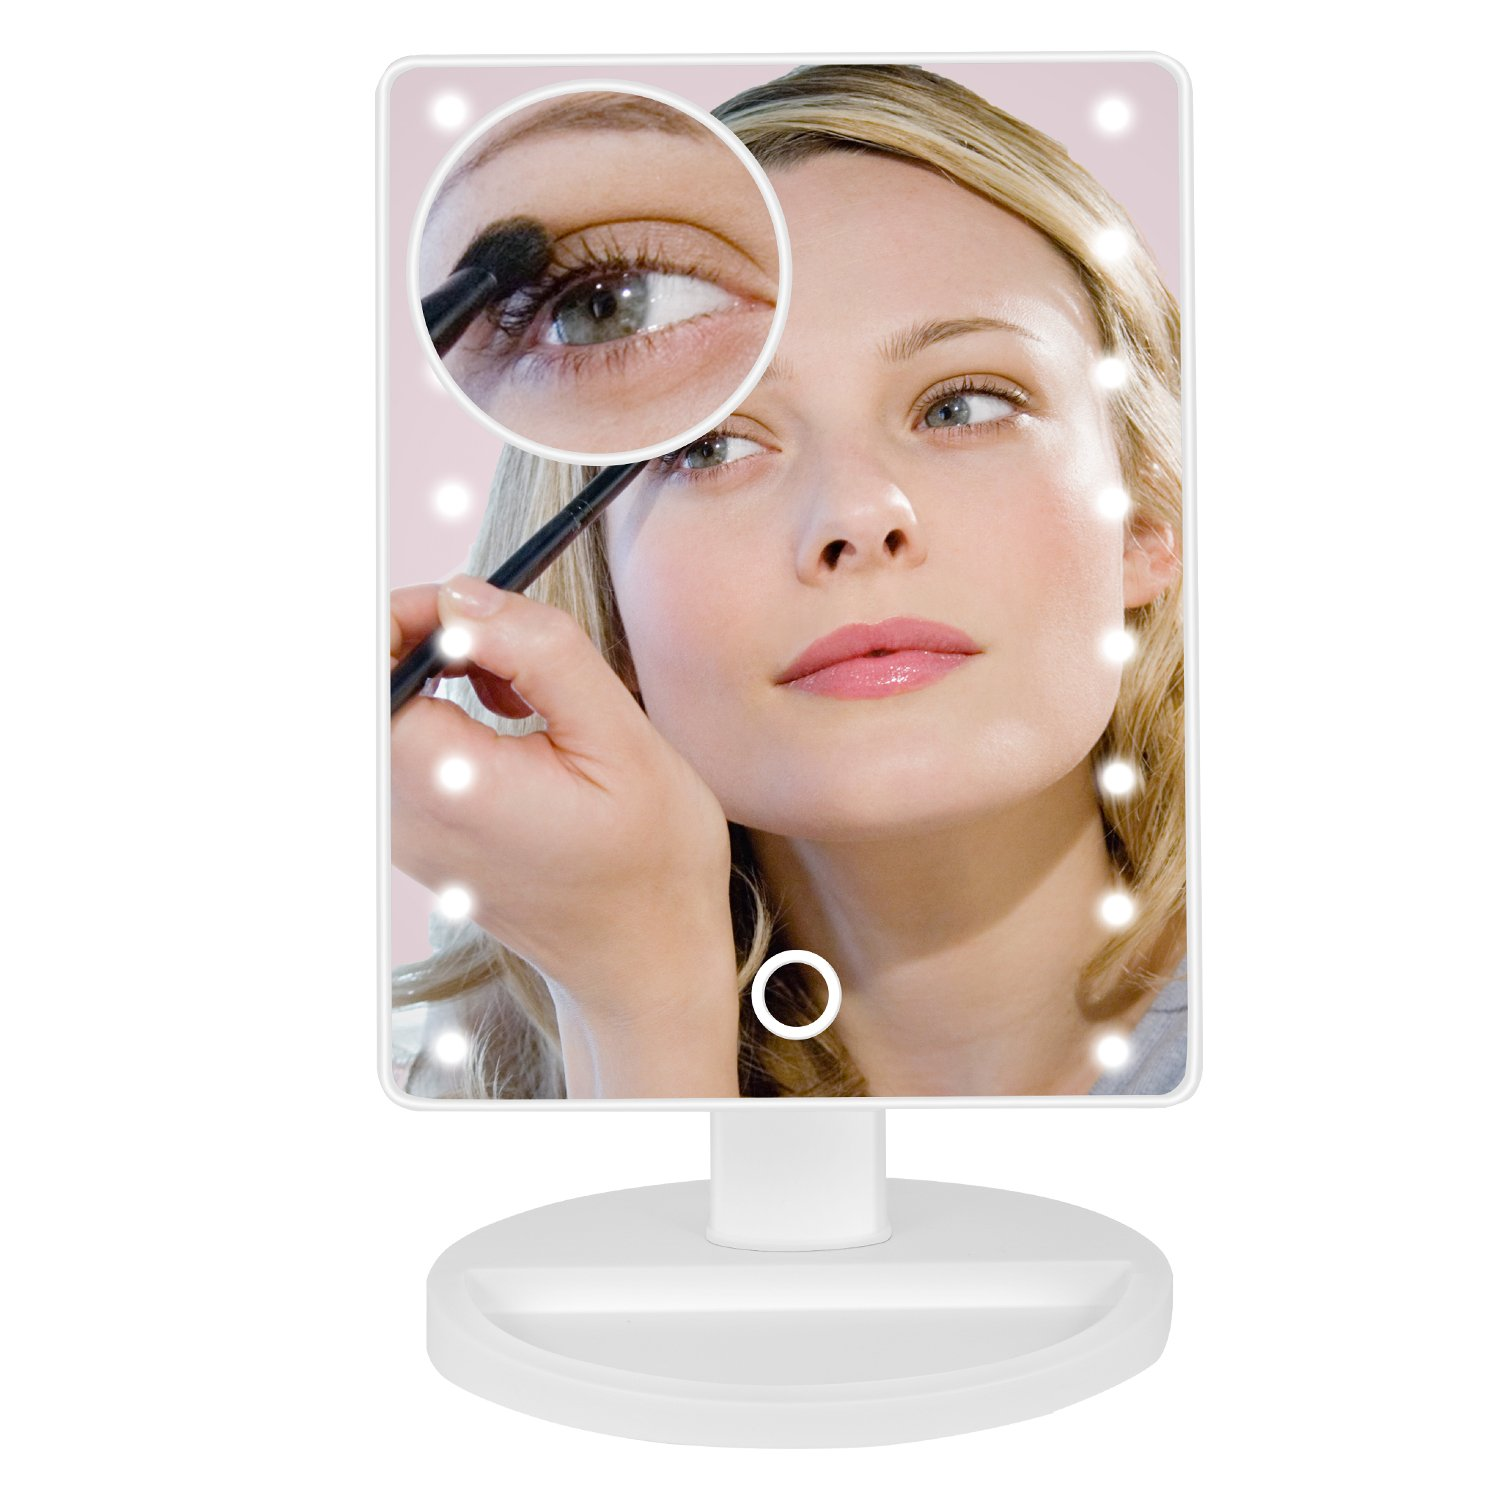 Lighted Makeup Mirror, BEW Vanity Mirror with 16 LED lights & Touch Screen Dimmable and Detachable 10x Magnifying Spot Mirror Dual Power Supply Countertop Cosmetic Mirror (White)